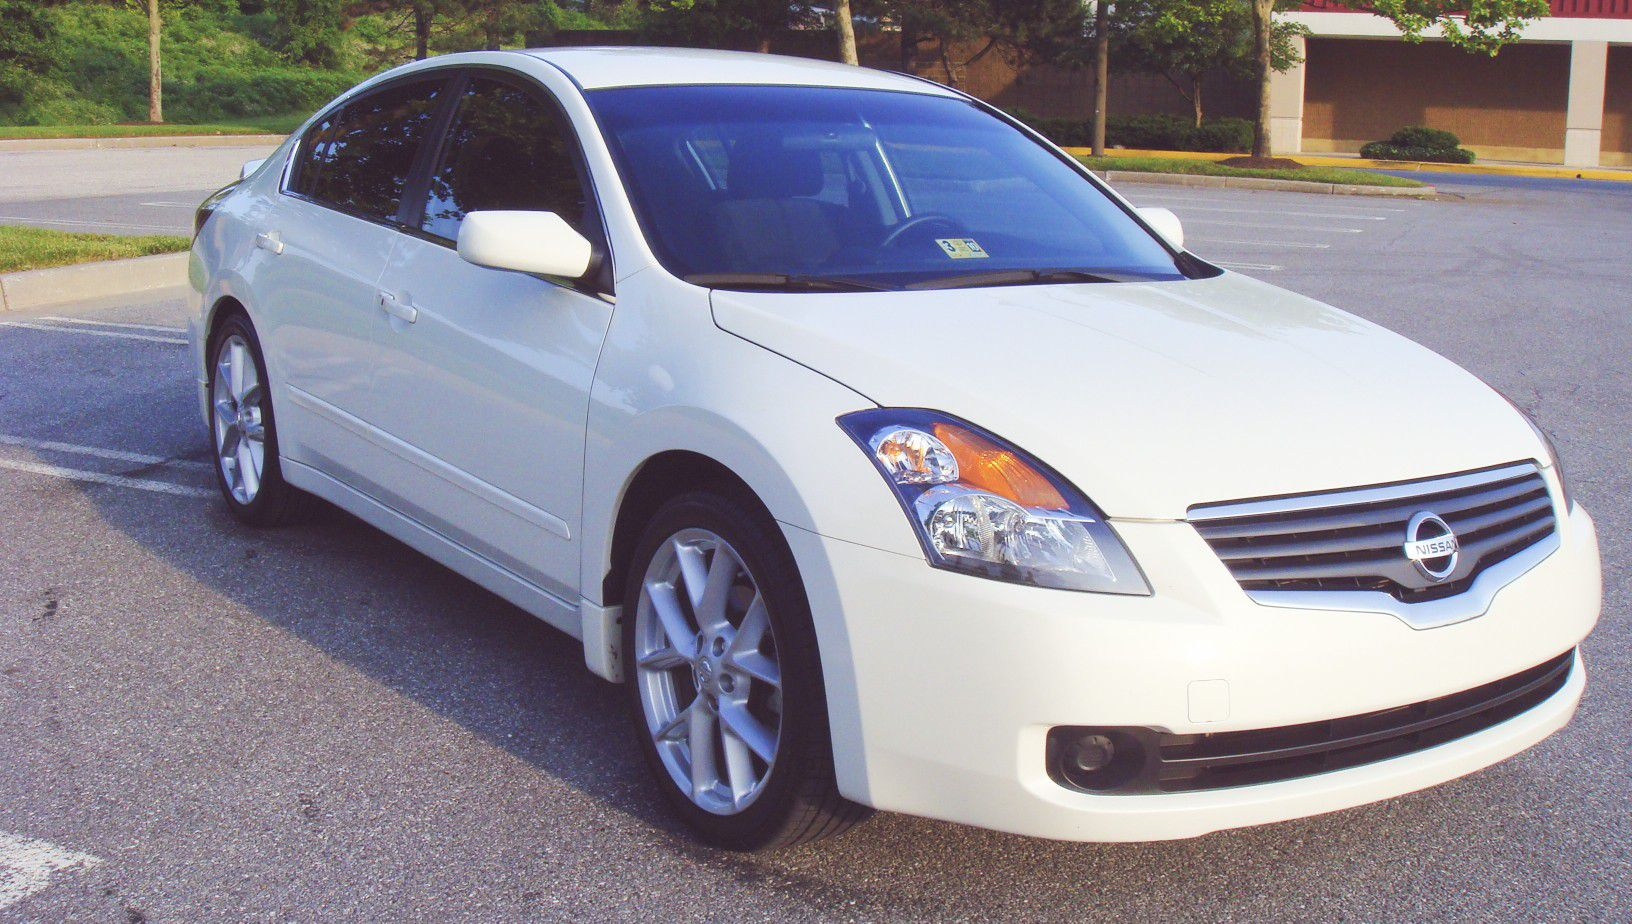 CLASSY White 2007 Nissan Altimas **WE RESPECT SOCIAL DISTANCING**